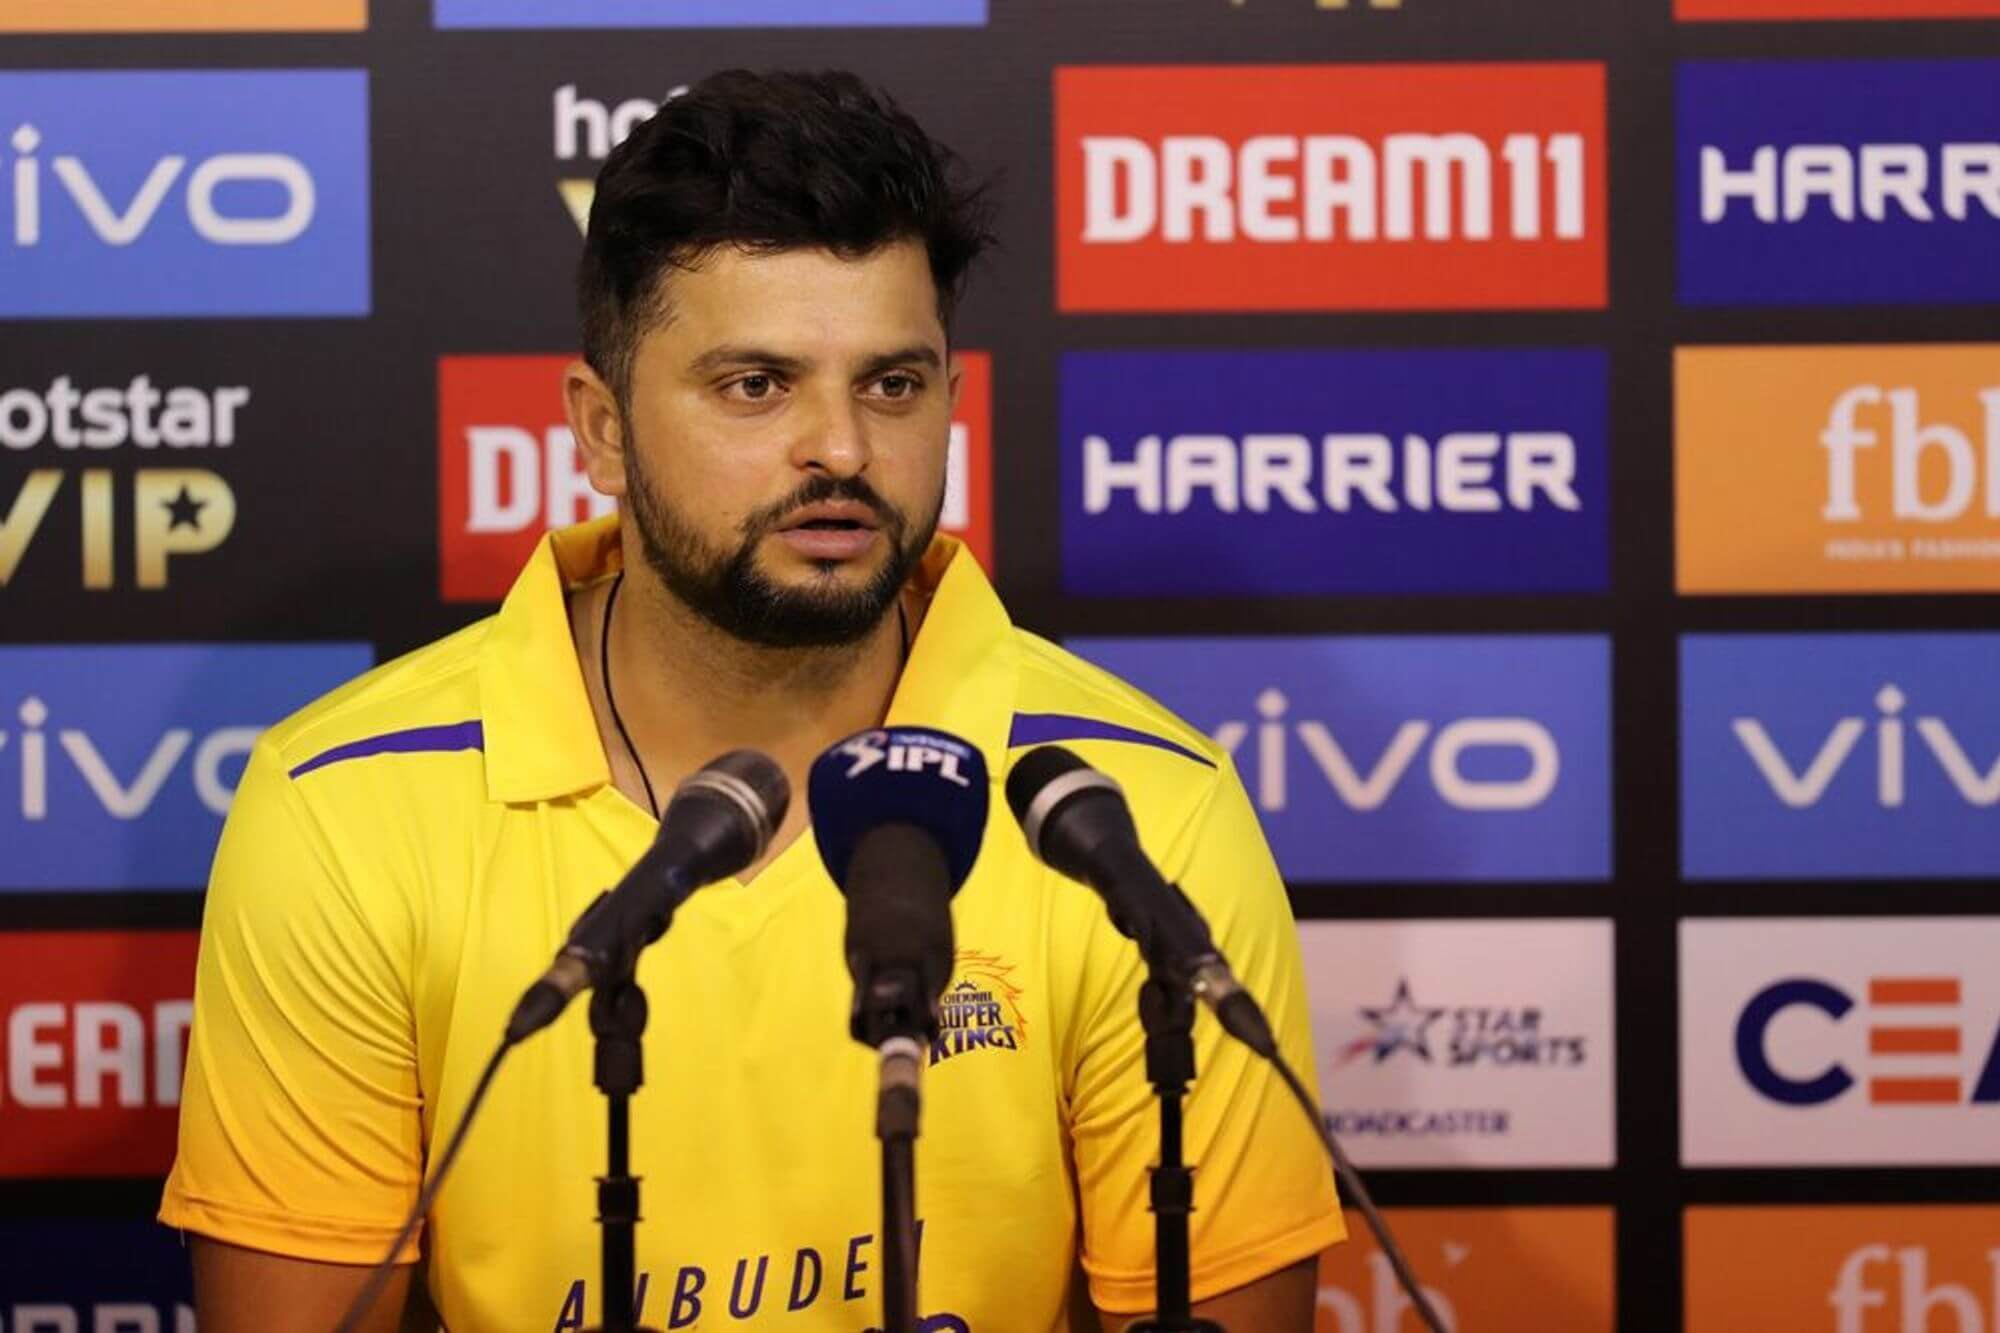 sureshrainahintsatreturningtocskcampforupcomingipl2020